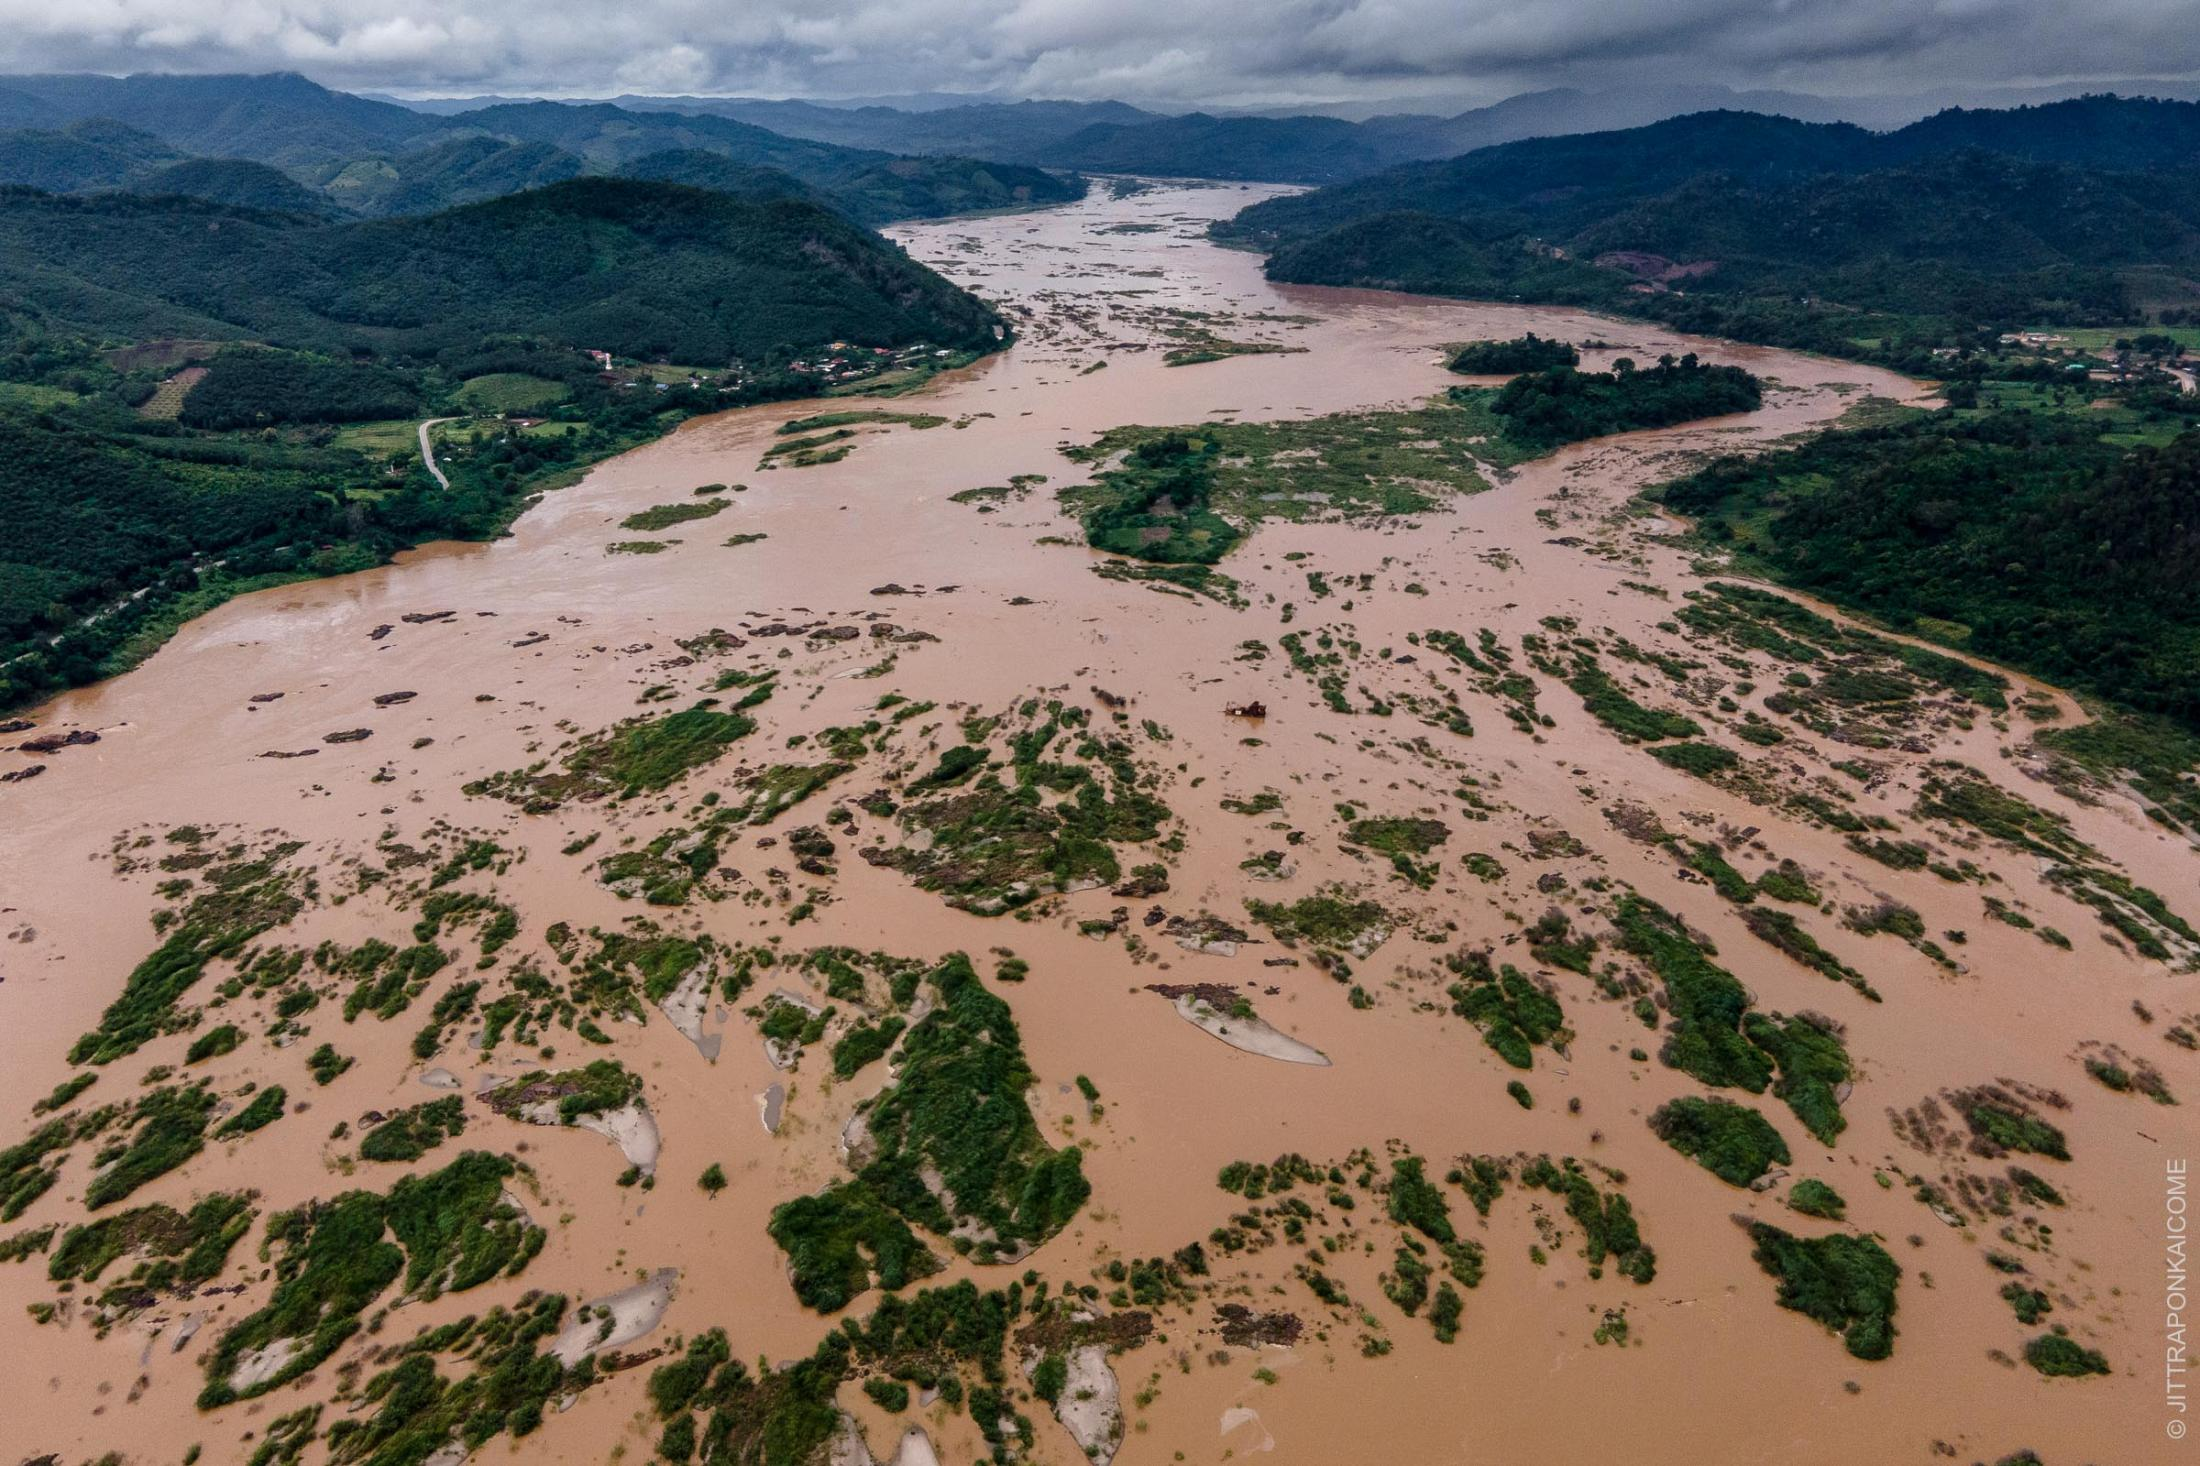 Even during the rainy season, the water level of the Mekong River is lower than average. In the river, rocks and small islands appear, which are usually covered by water at this time of the year resulted from upstream dams in China and Laos - In Nong Khai, Thailand – August 2020.